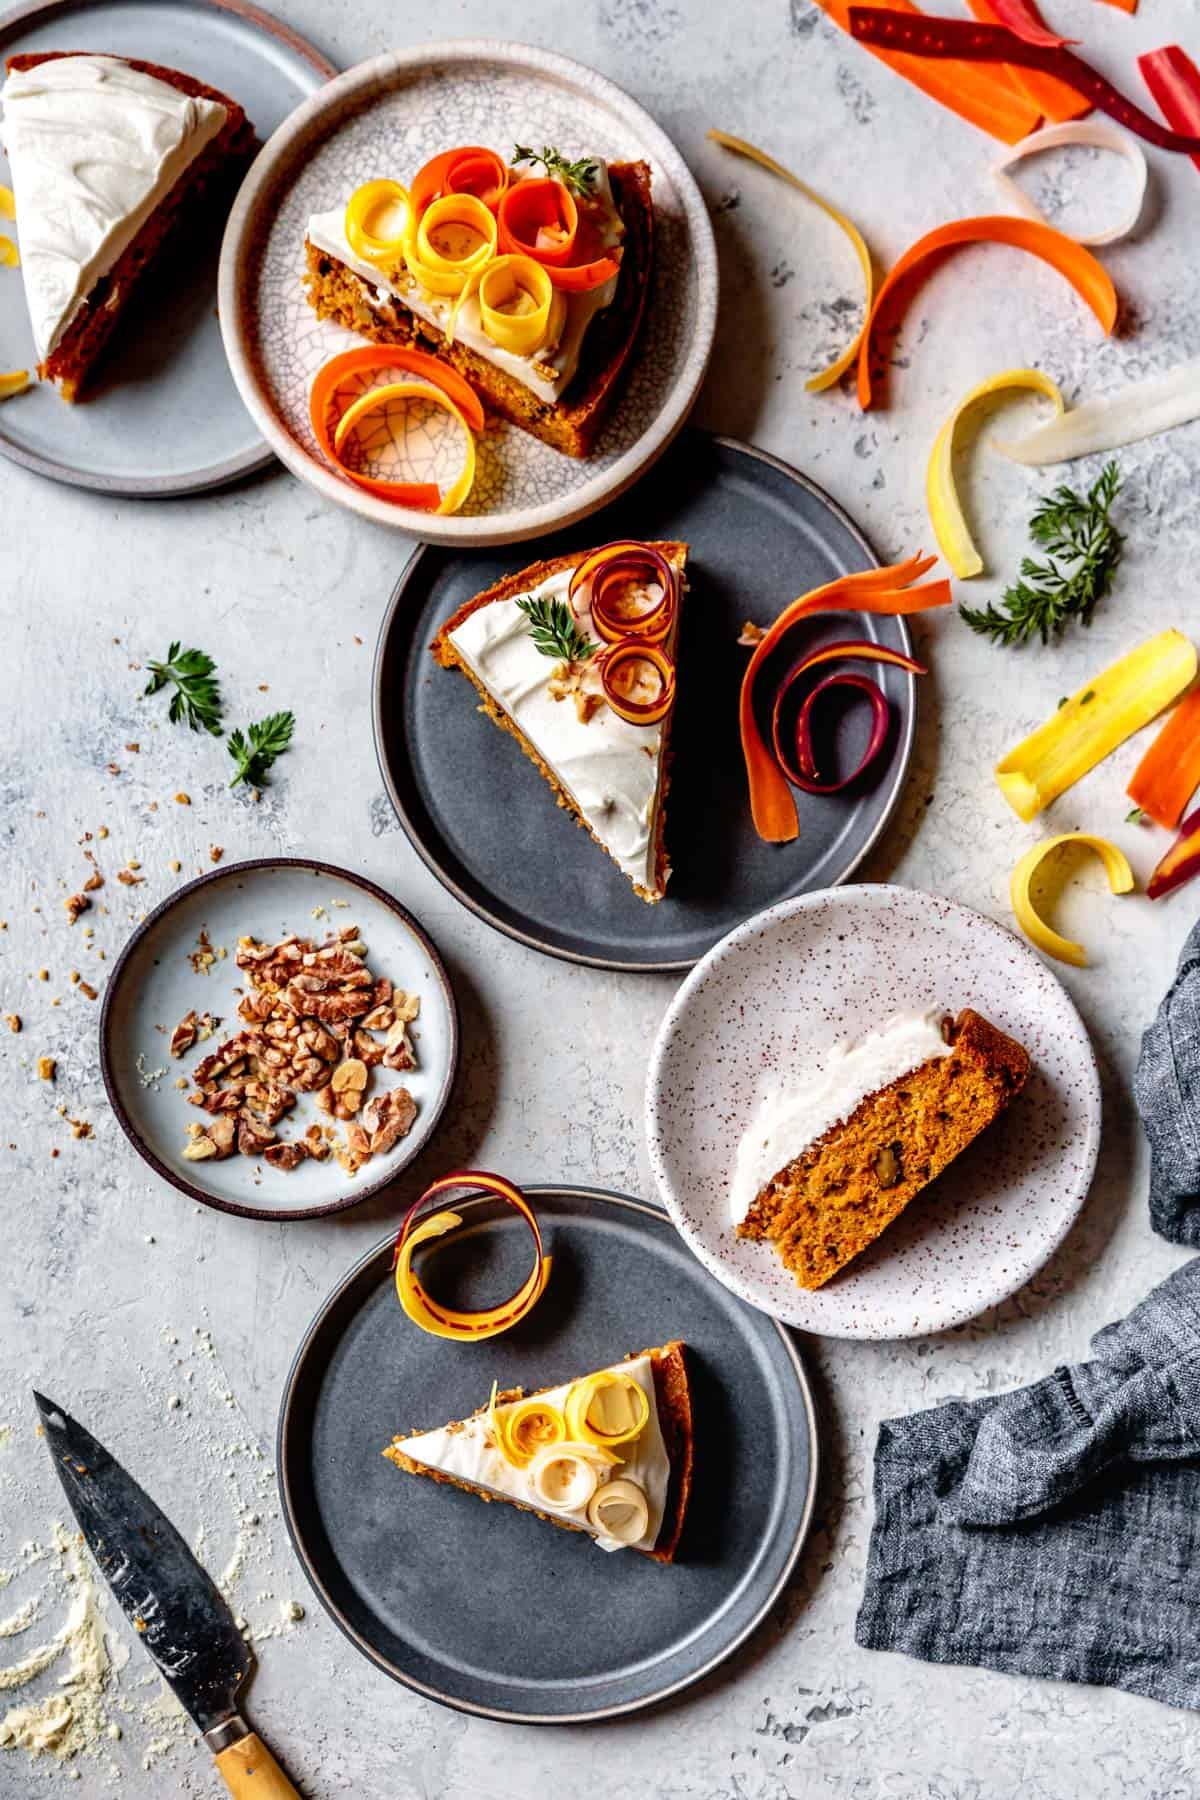 slices of Dairy Free Gluten Free Carrot Cake on table